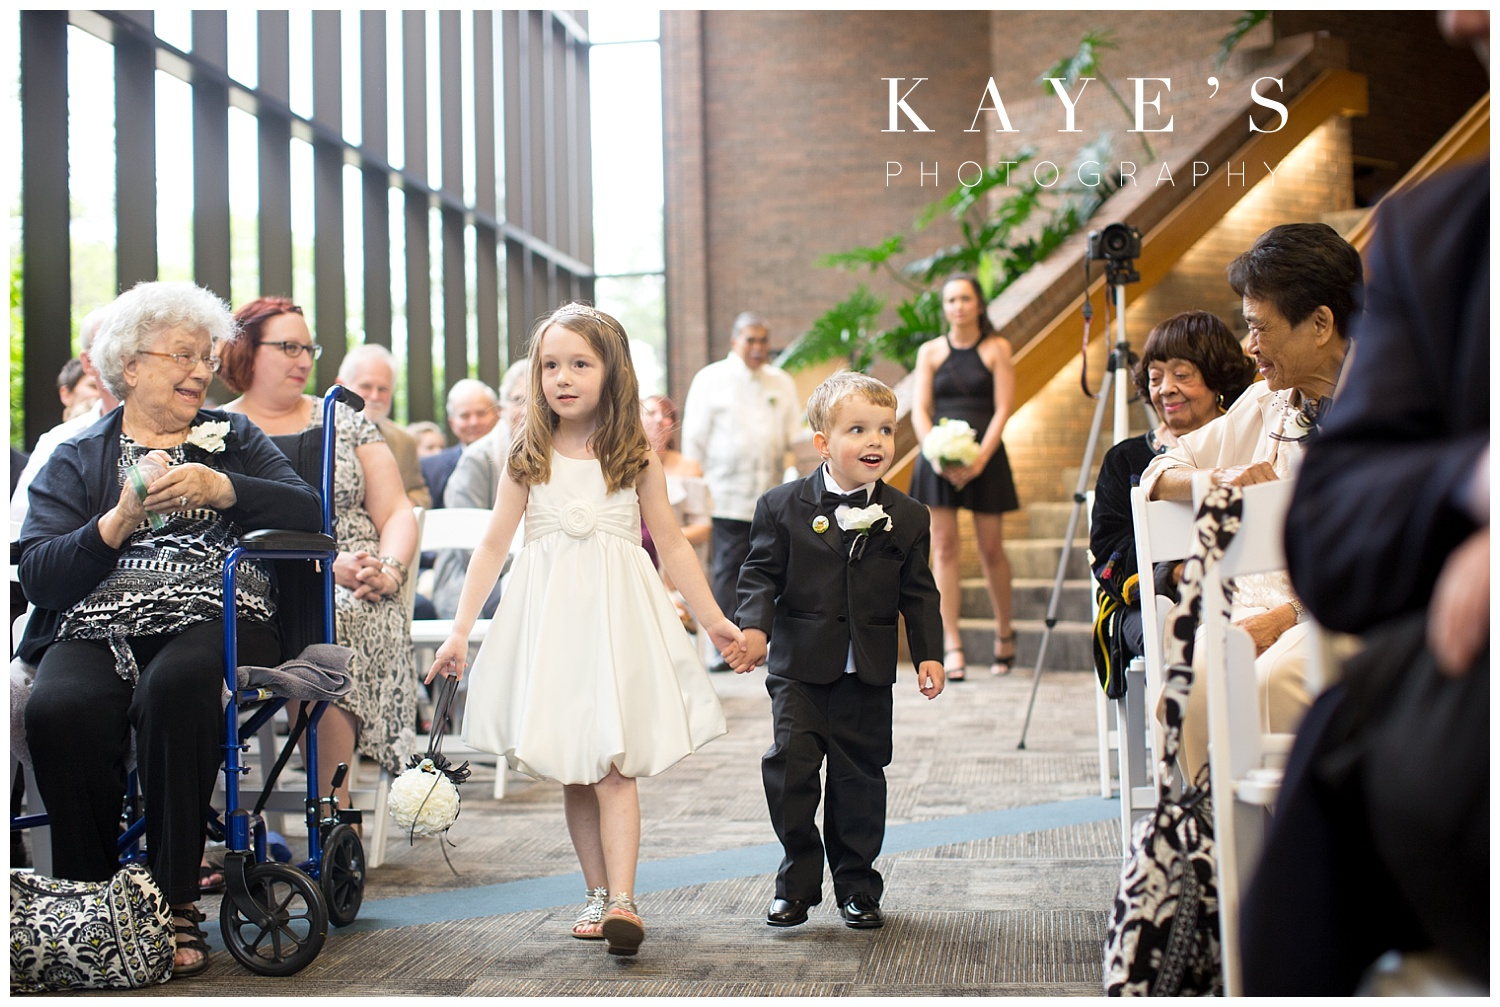 ring bearer and flower girl going down the aisle during the wedding ceremony at university of michigan wedding